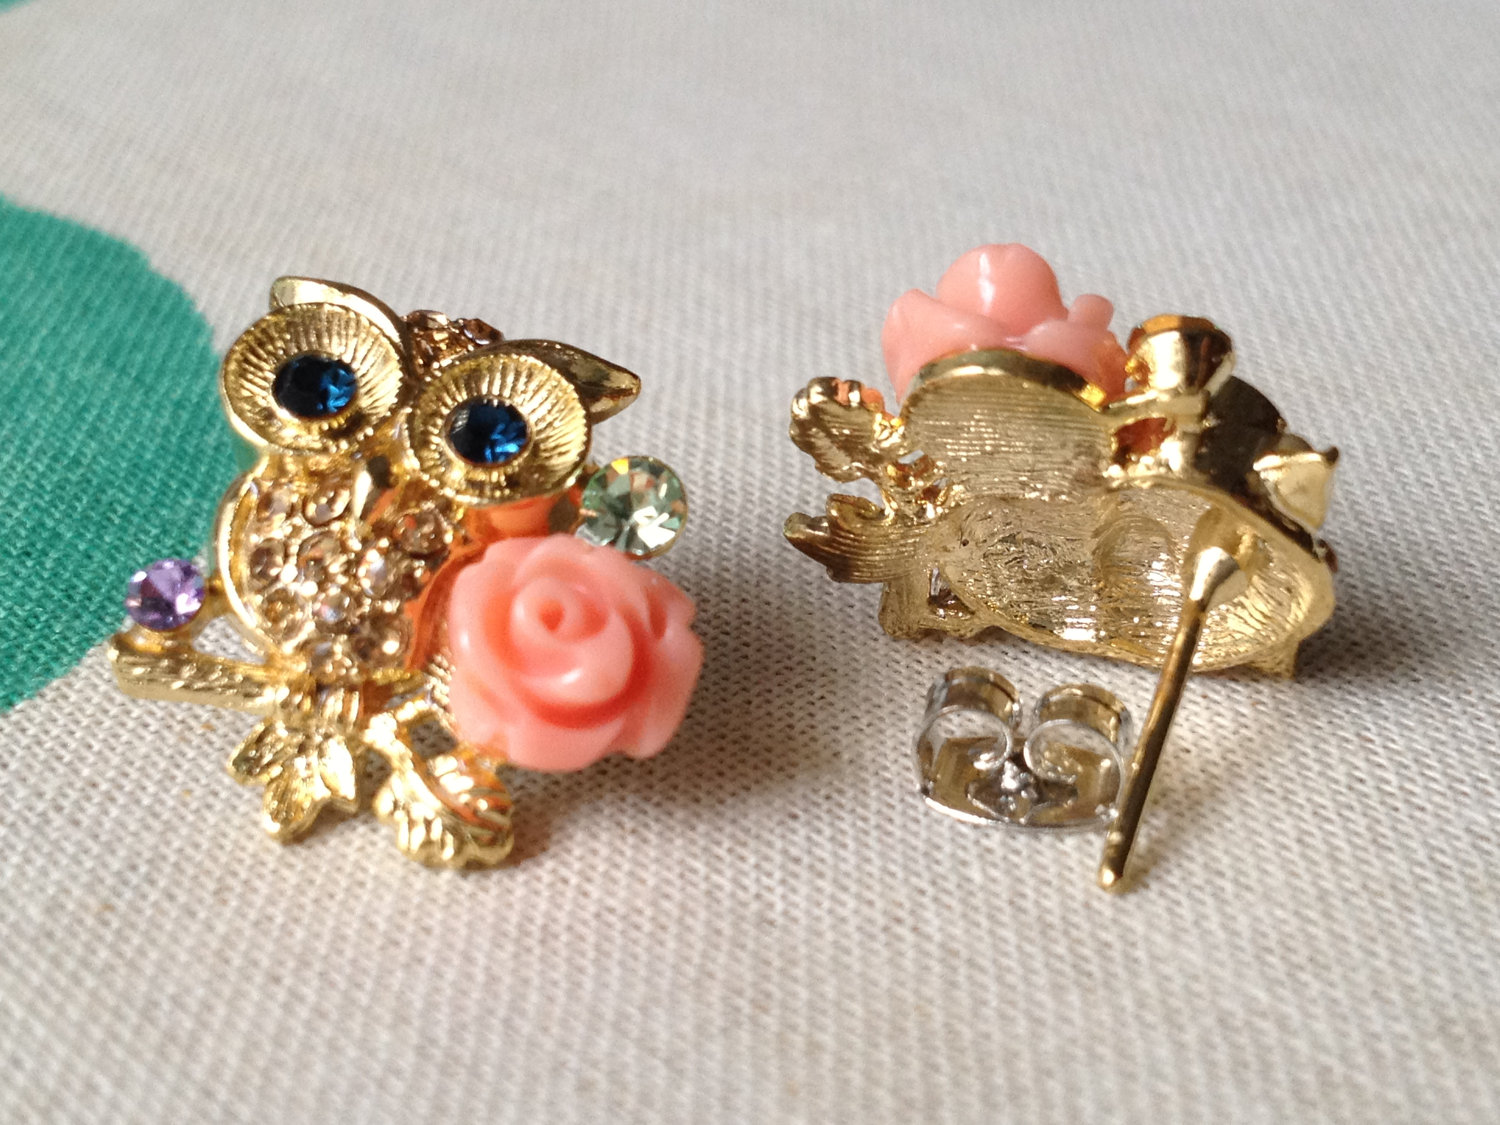 Owls for the wedding 2012 reception trends handmade owl for Local handmade jewelry near me